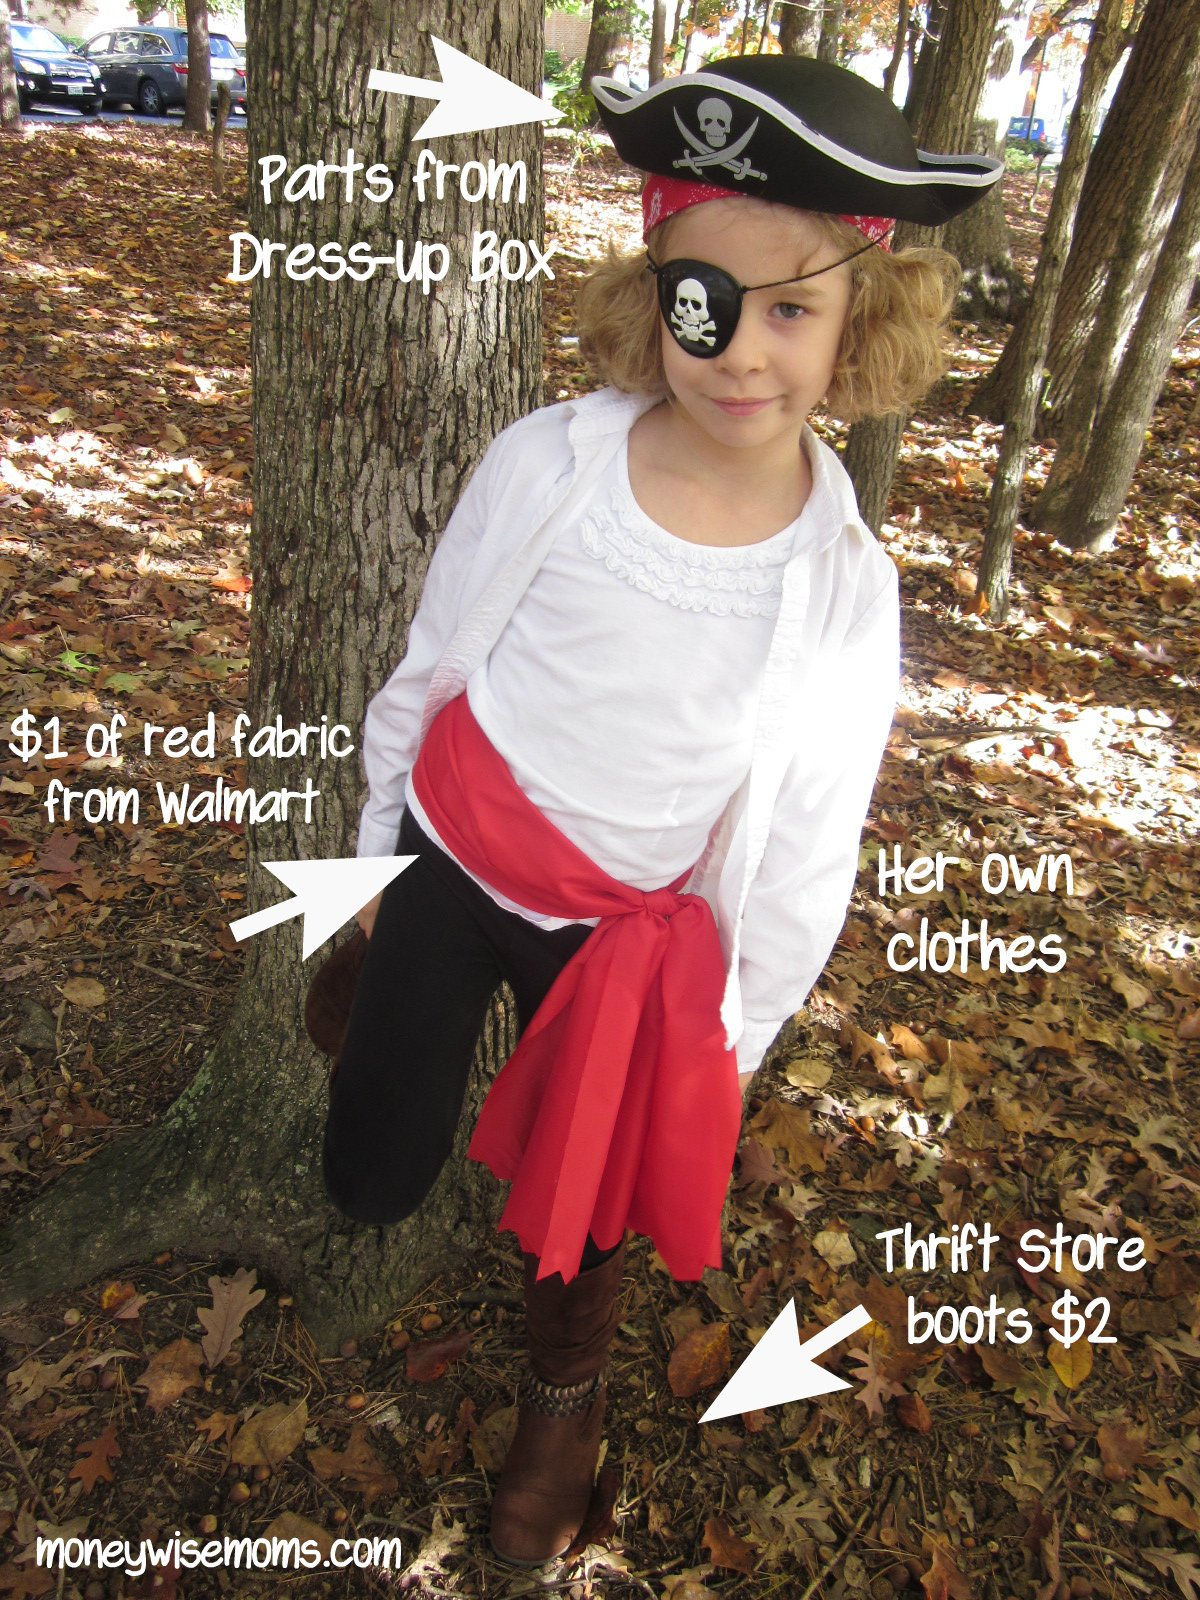 Pirate Costume | MoneywiseMoms  sc 1 st  Moneywise Moms & Pirate Costume + Tips for a Moneywise Halloween - Moneywise Moms